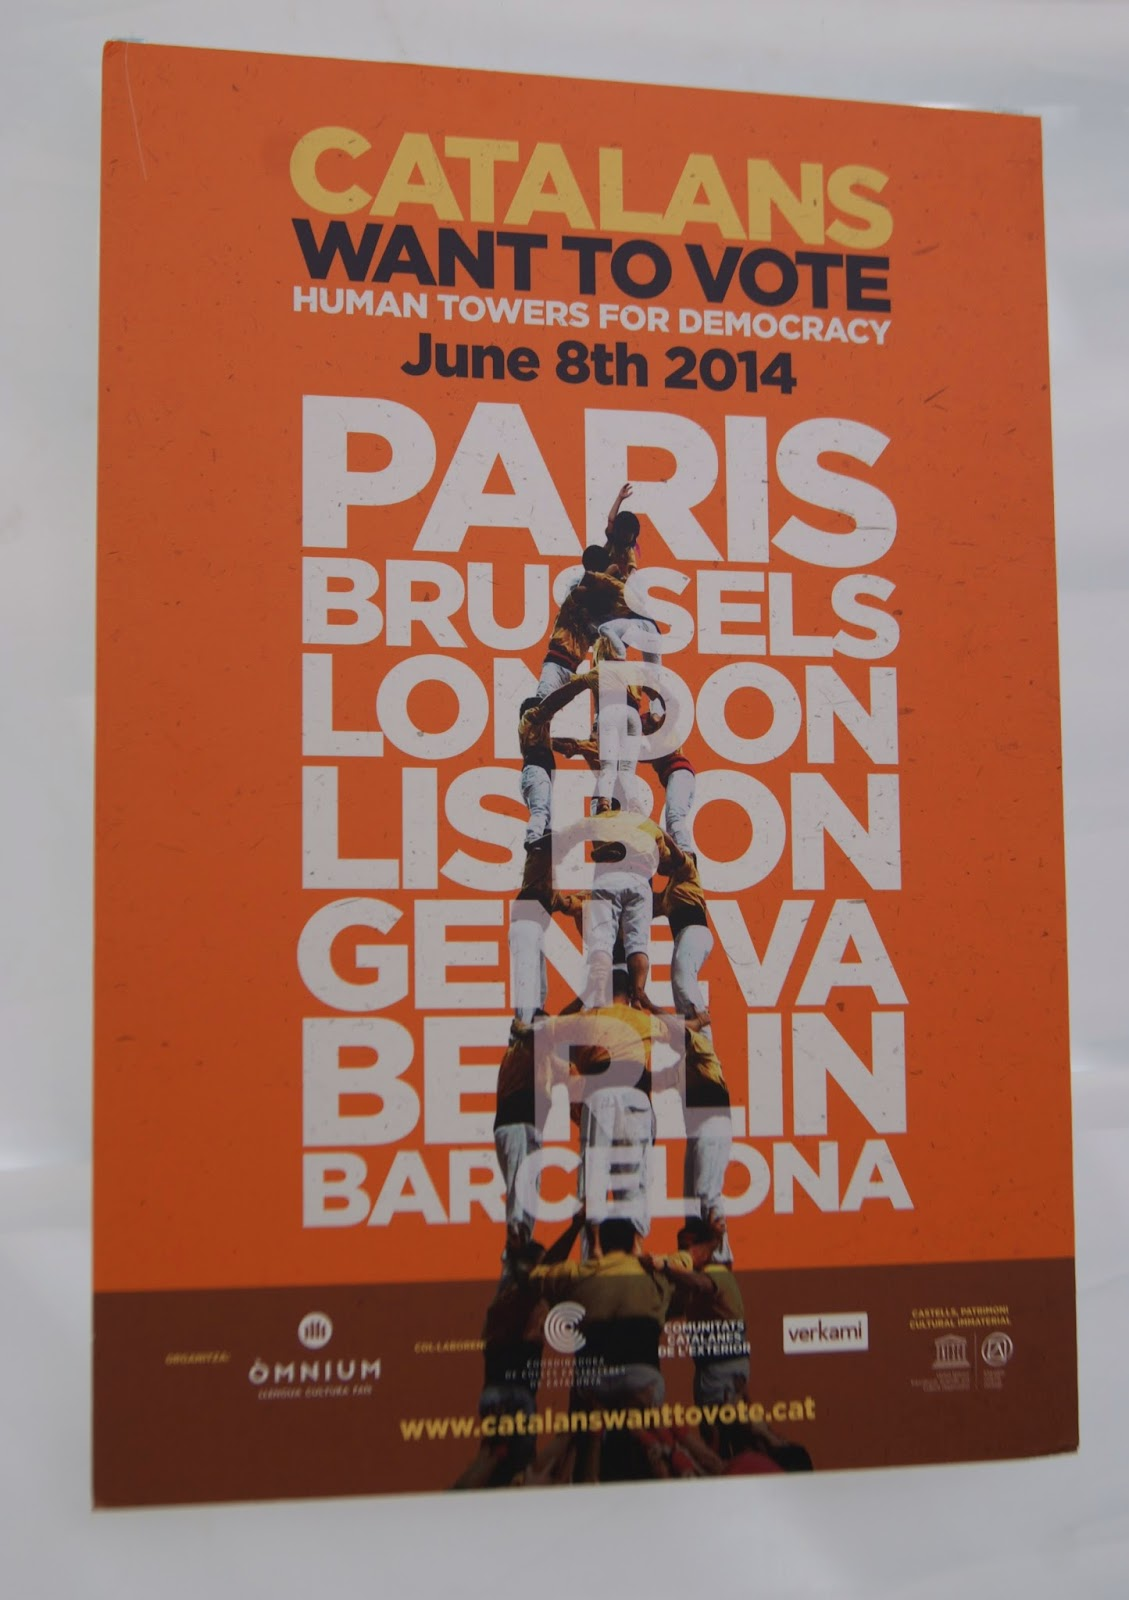 Cartell: Catalans want to vote. Human towers for democracy, June 8th 2014 per Teresa Grau Ros